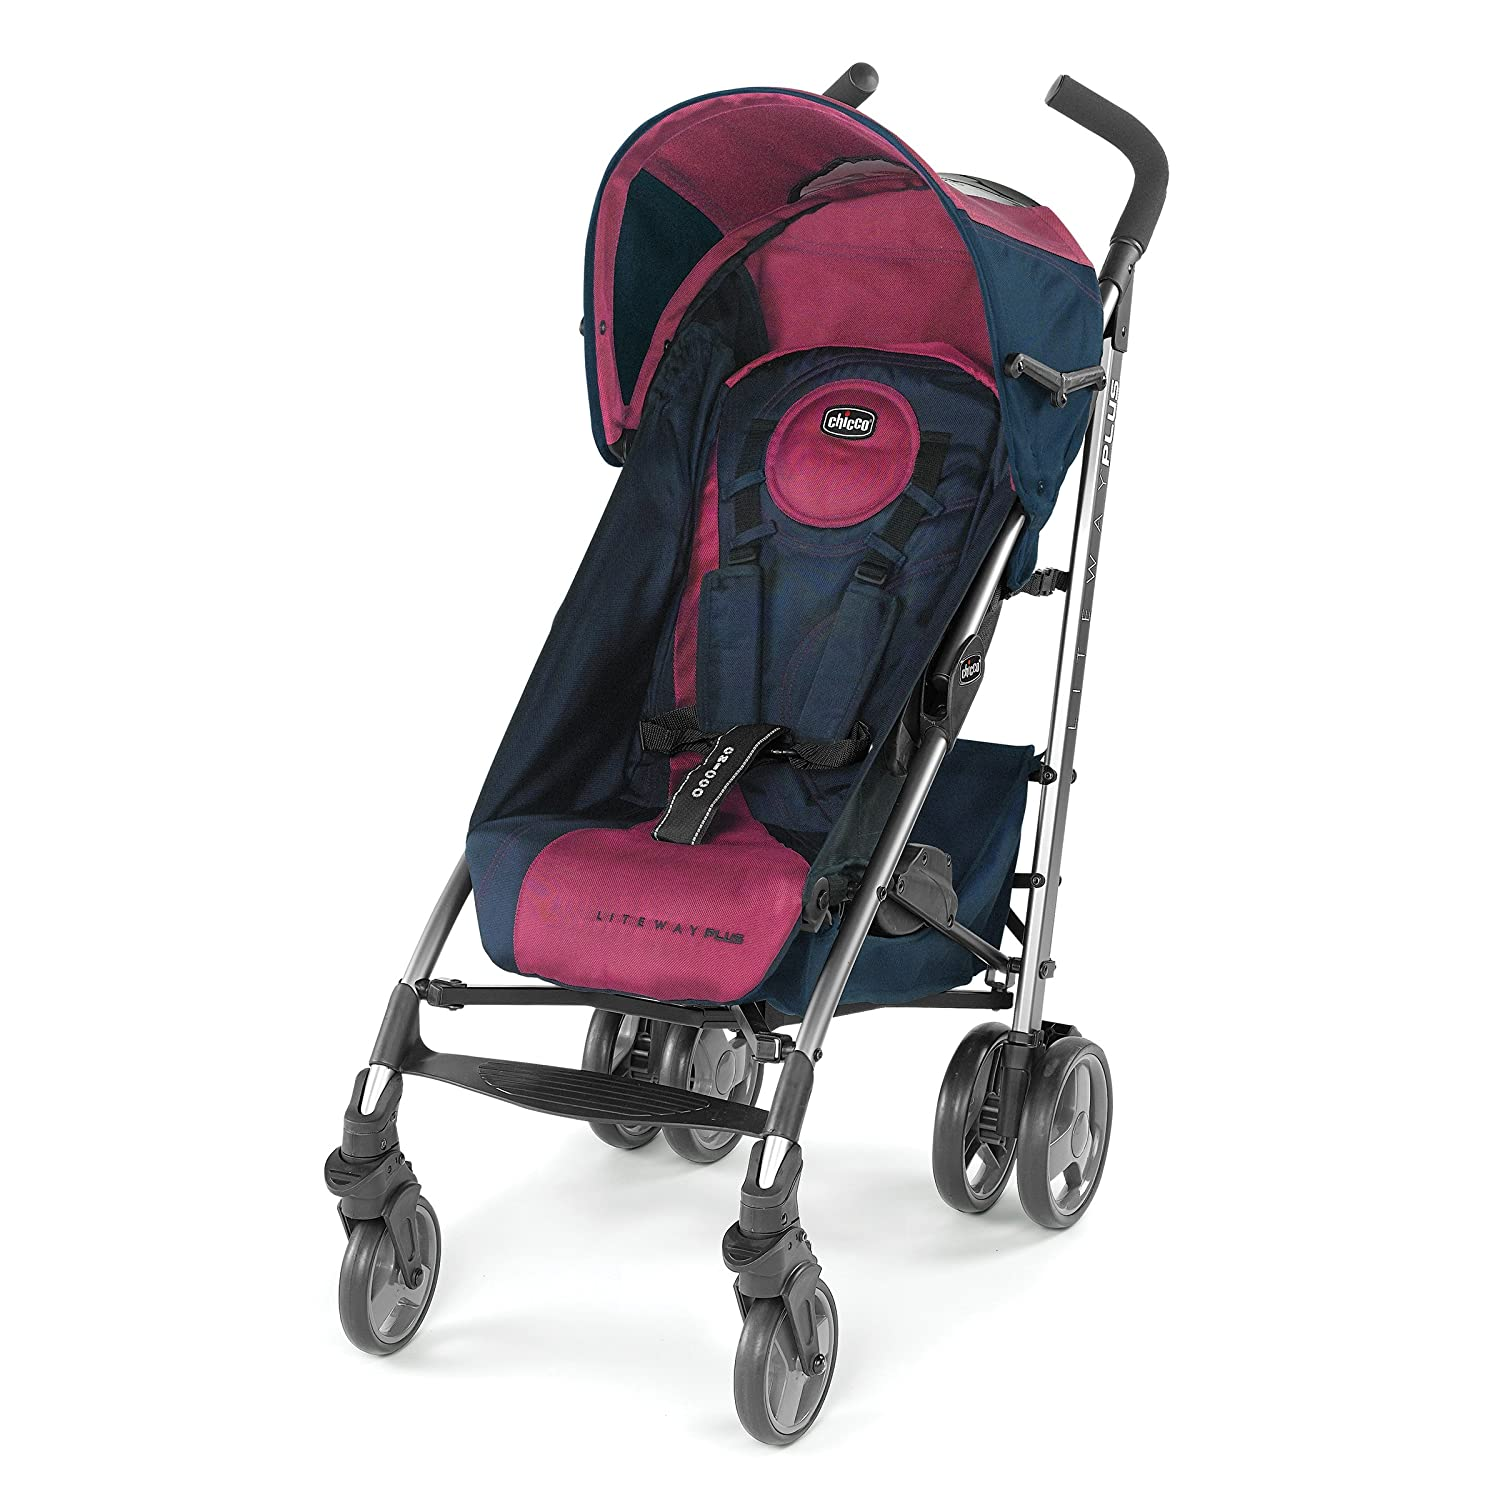 Chicco Liteway Plus Stroller, Blackberry 05079317280070